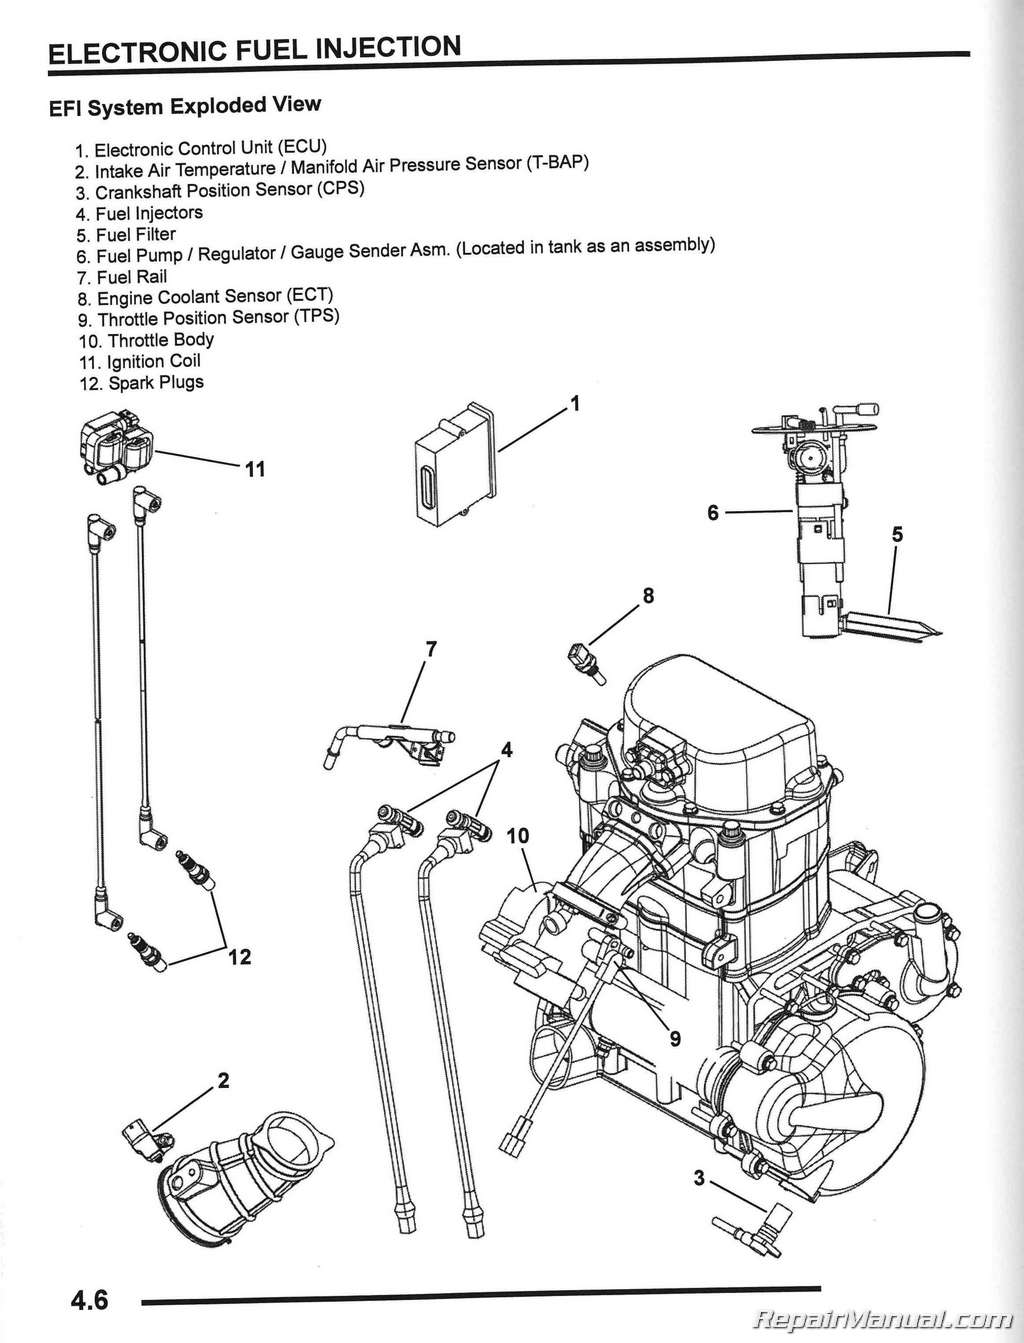 Polaris Ranger Engine Diagram Wiring Diagrams For Dummies 2003 600 Liberty 2008 Rzr 800 Side By Service Manual Rh Repairmanual Com 400 2011 500